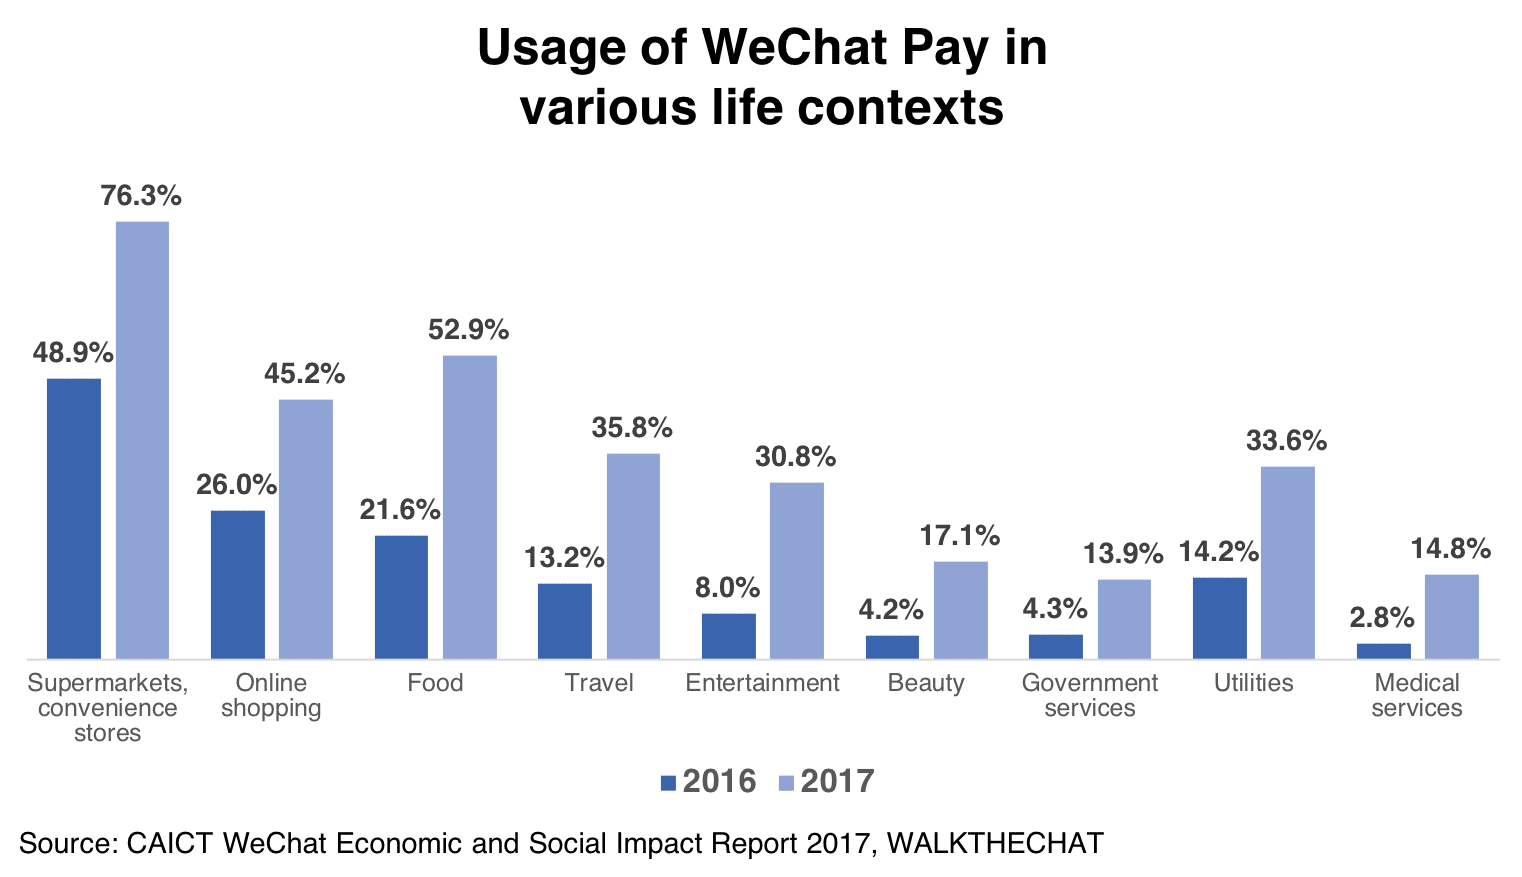 Usage of WeChat Pay